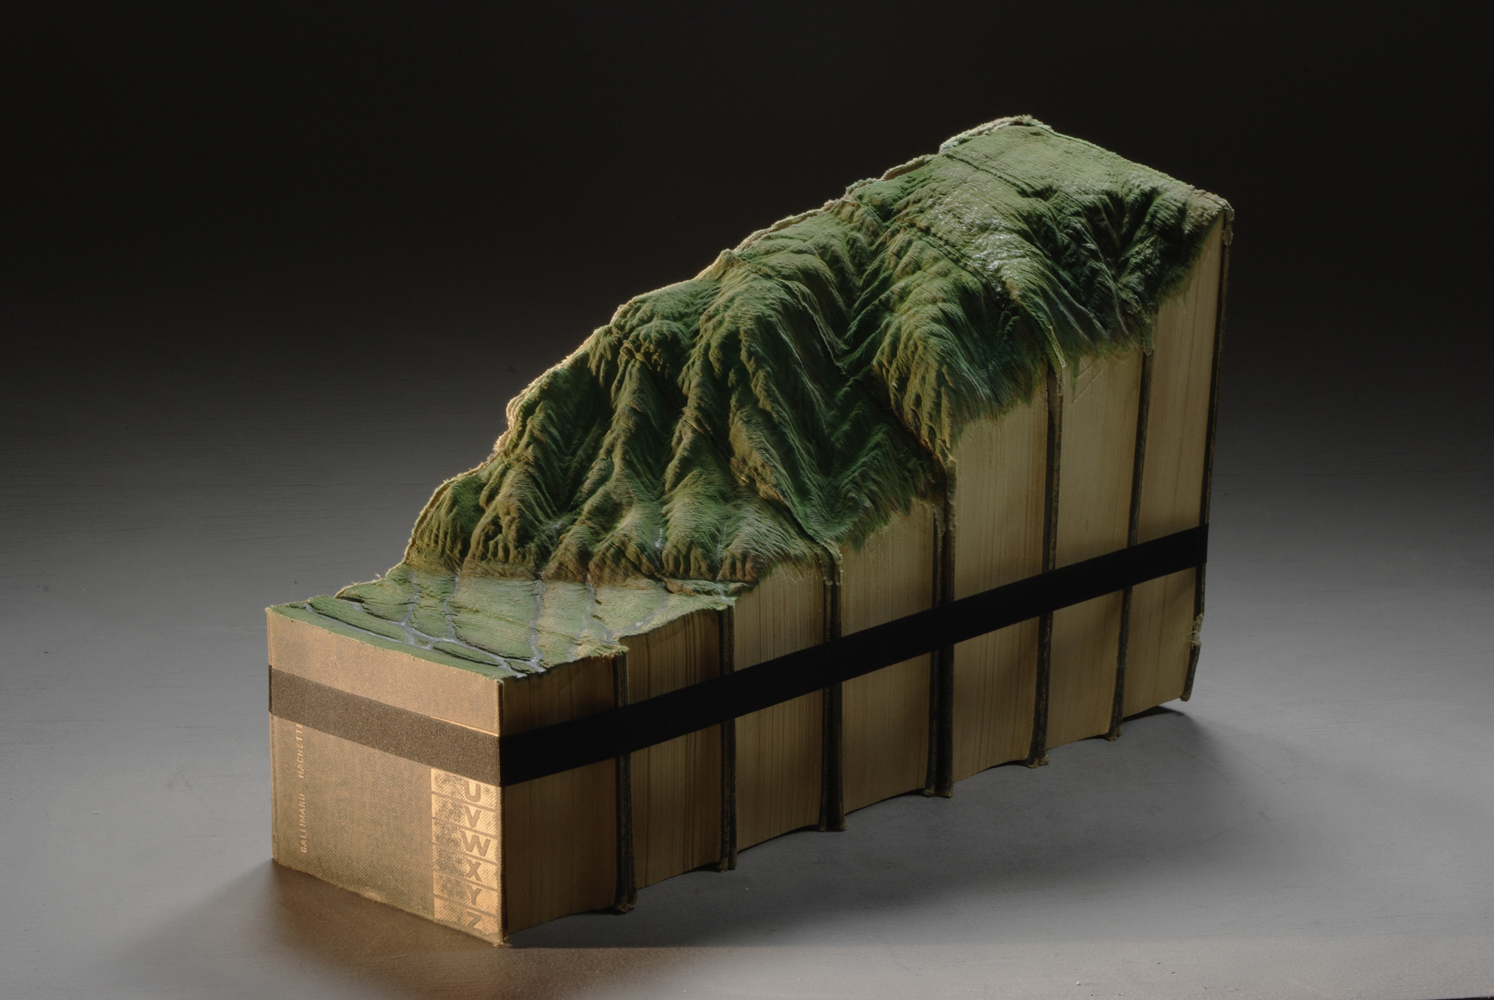 Carved Book Landscapes by Guy Laramee12